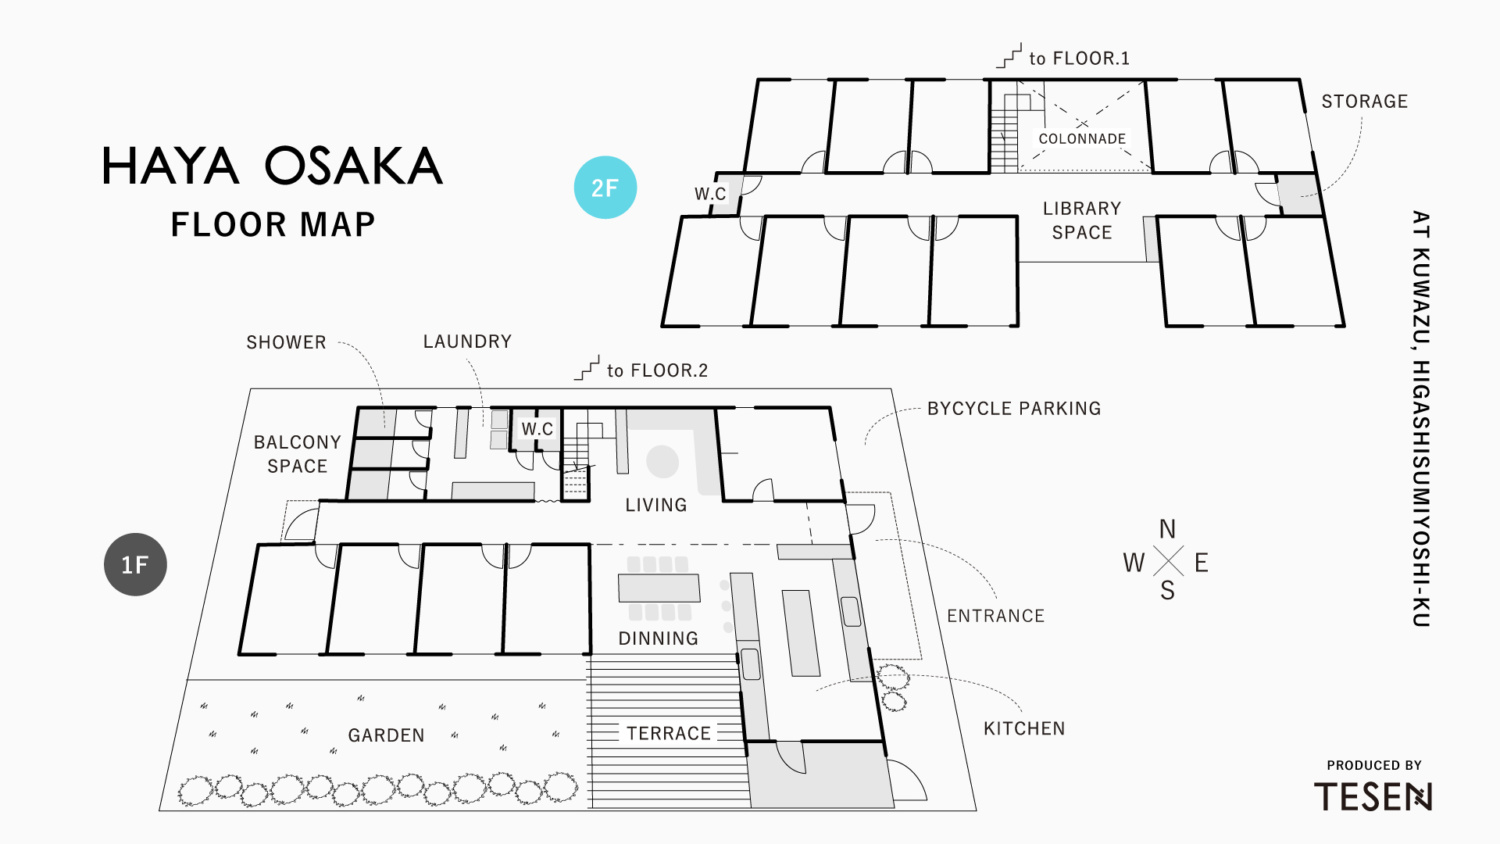 HAYA OSAKA FLOOR MAP | produced by TESEN